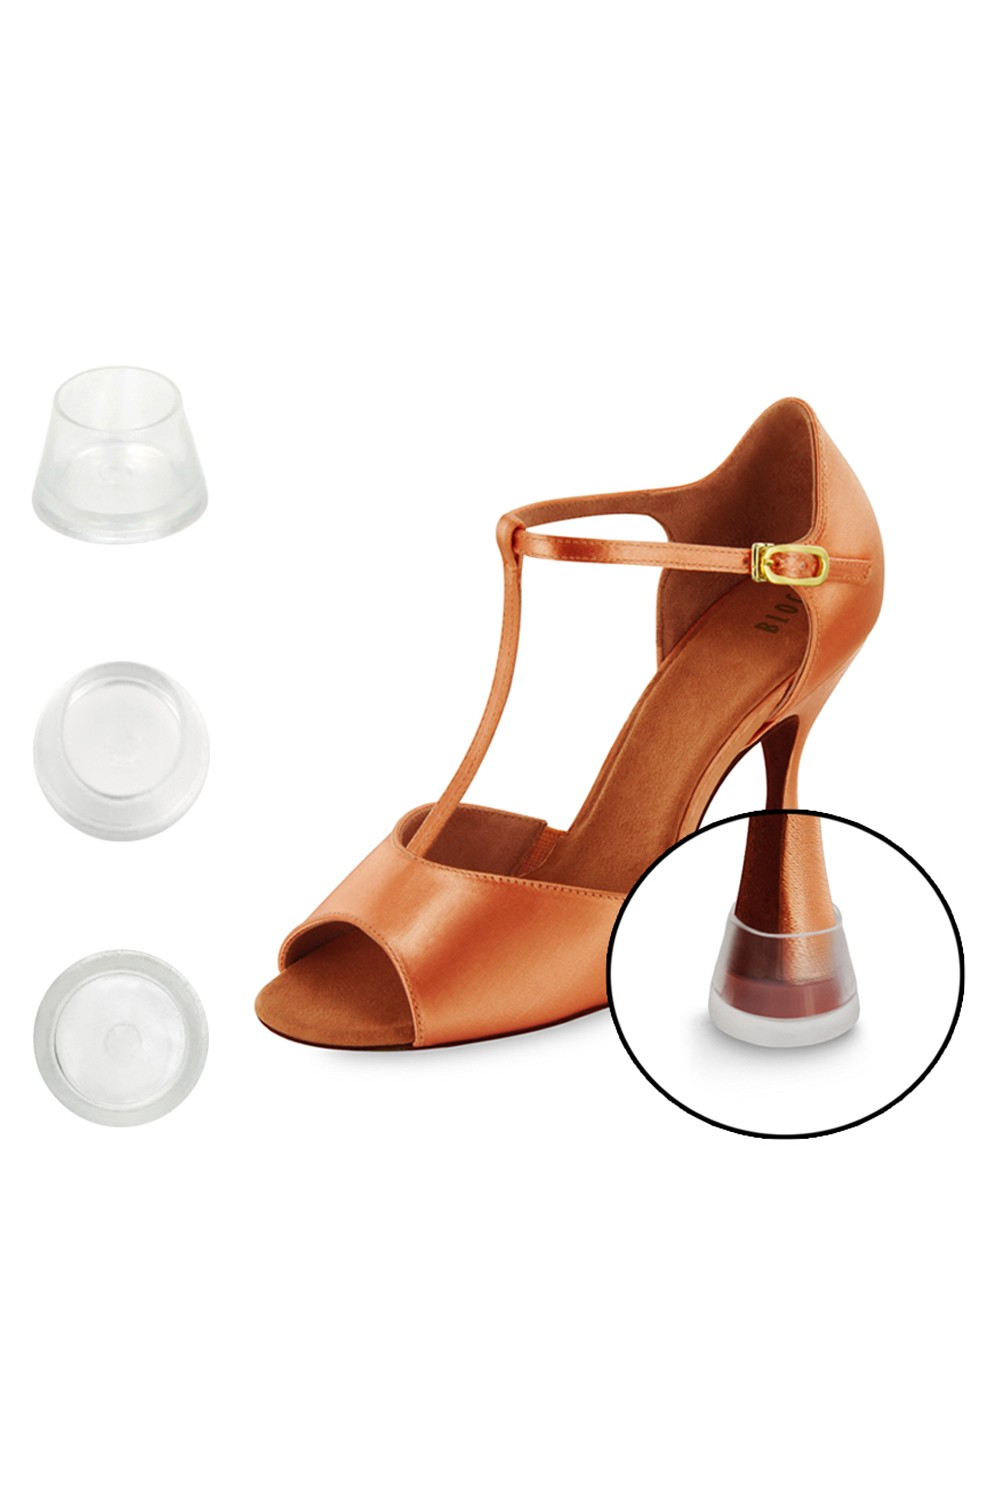 Protège-talon Rond Dance Shoes Accessories